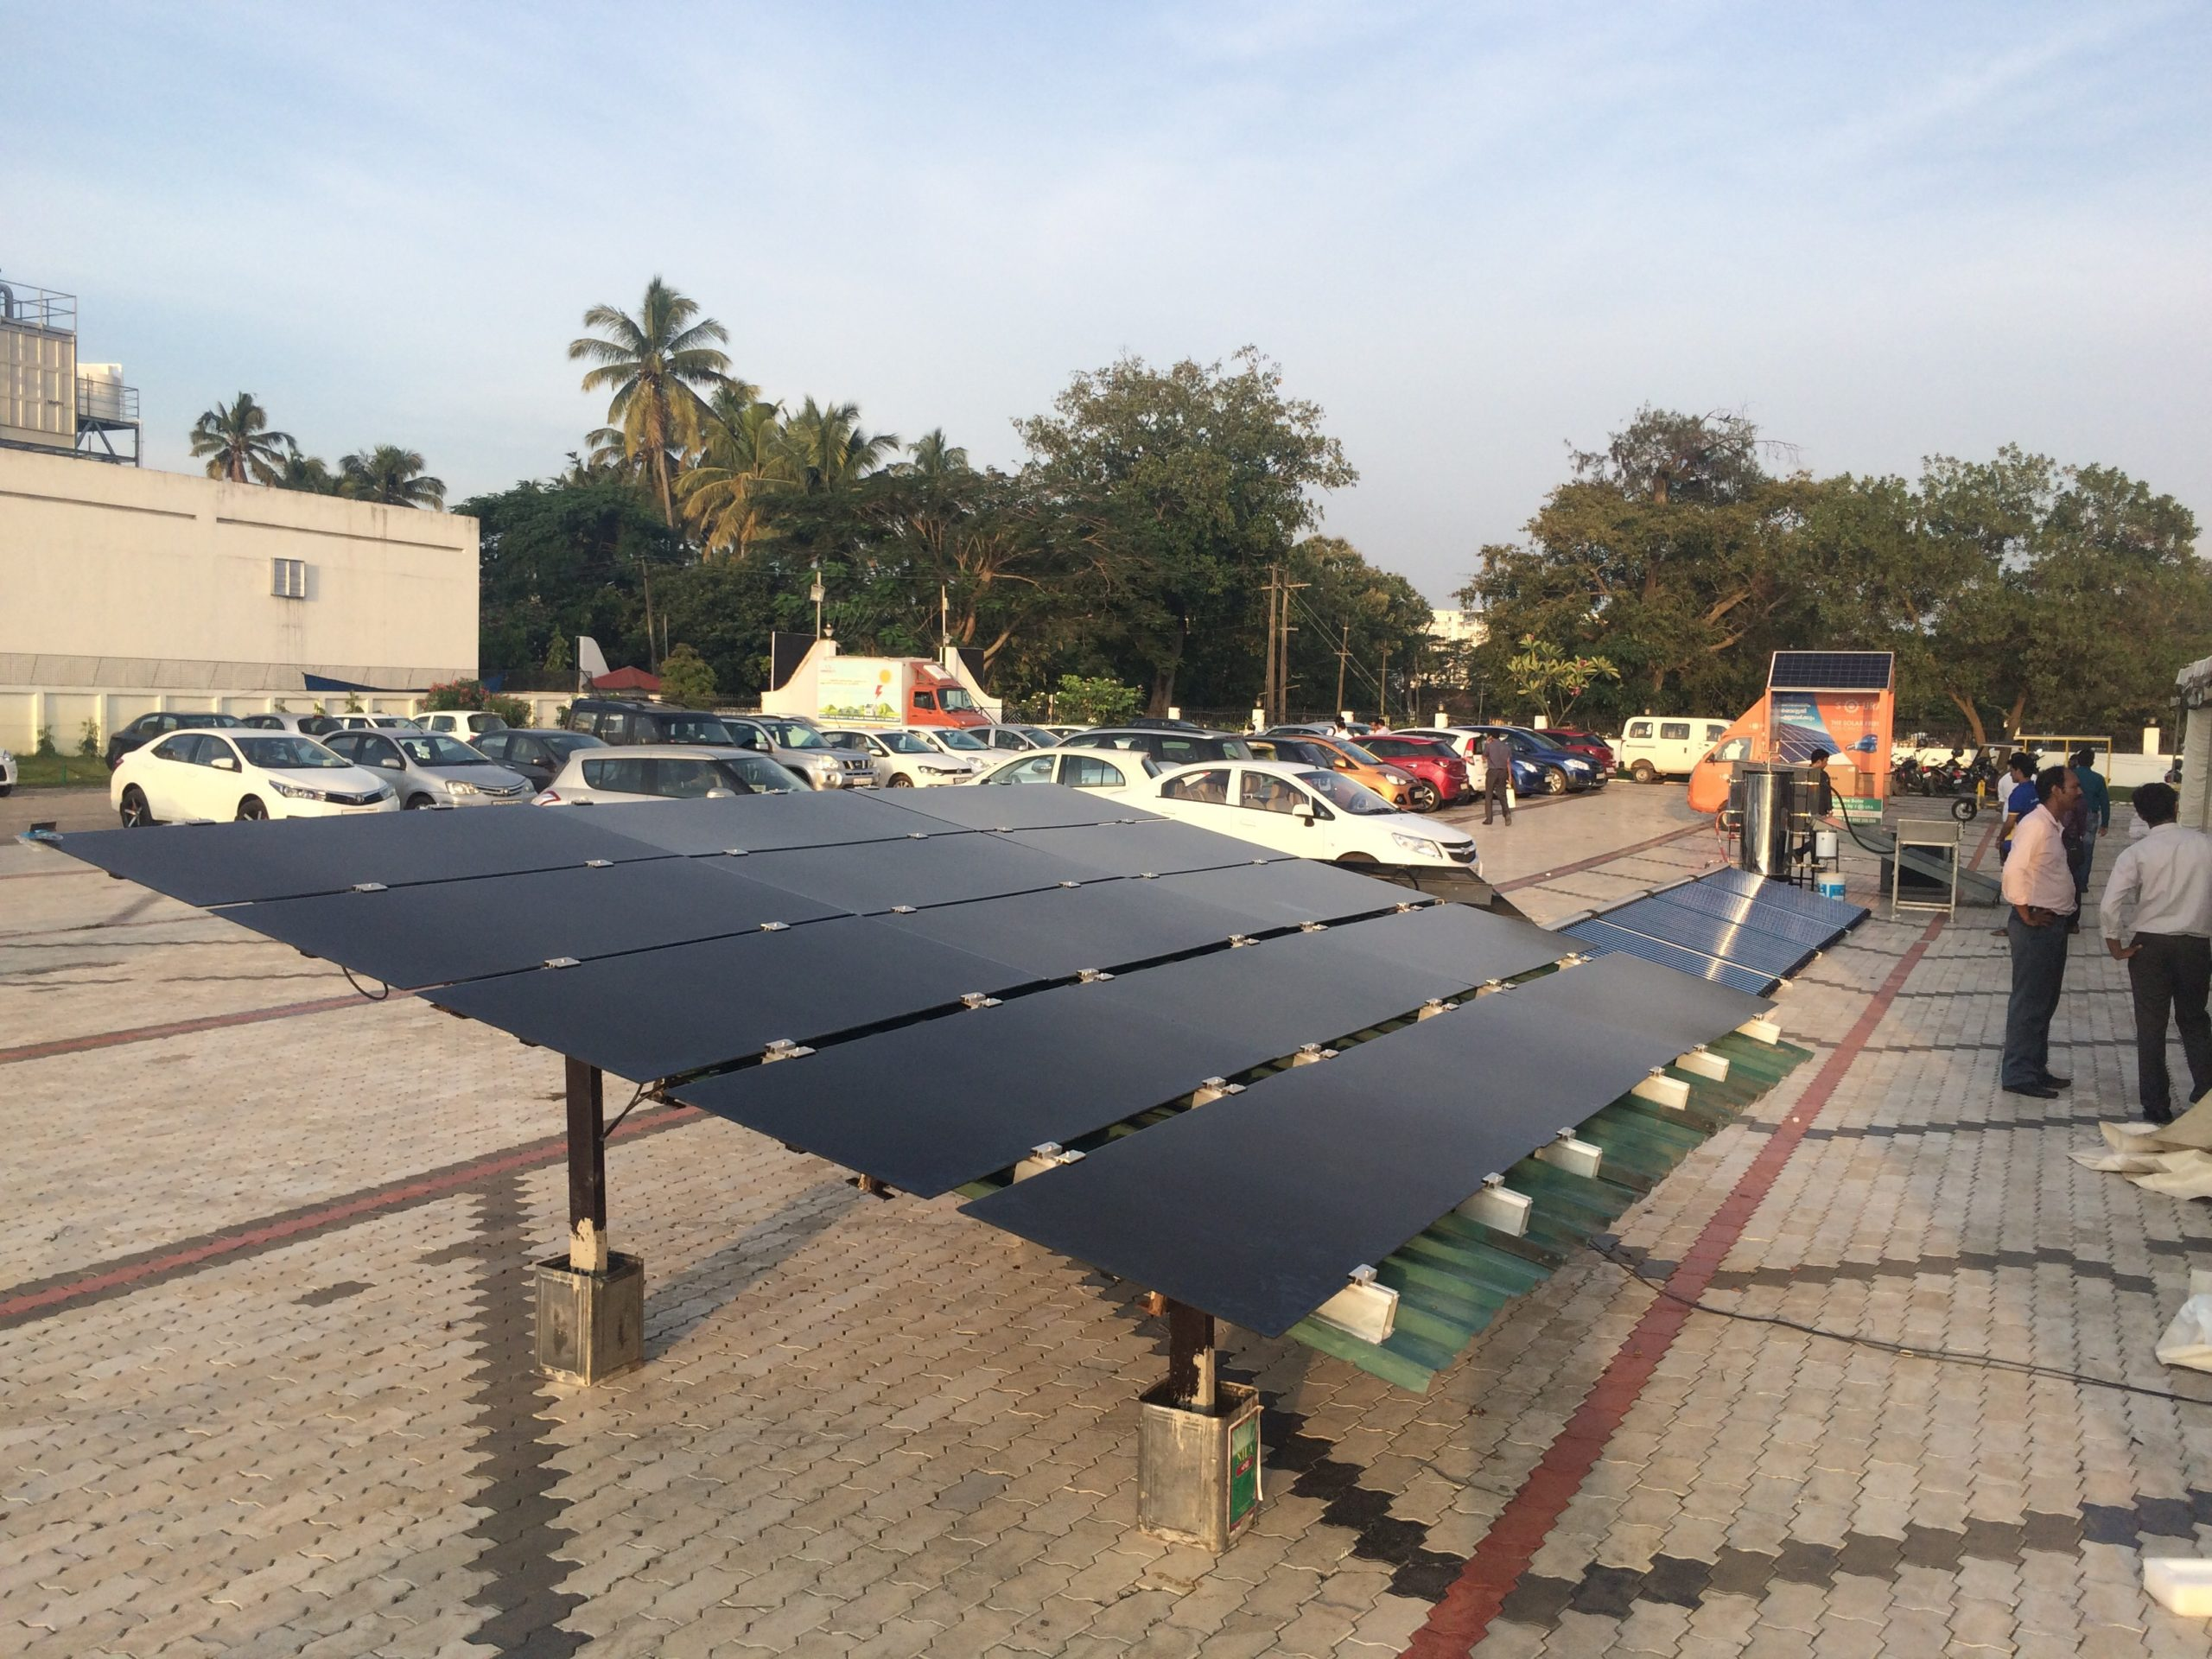 Kerala clean energy players may have to operate with no margin for some time to avoid going out of business, said the association KREEPA. Credit: Solar Media